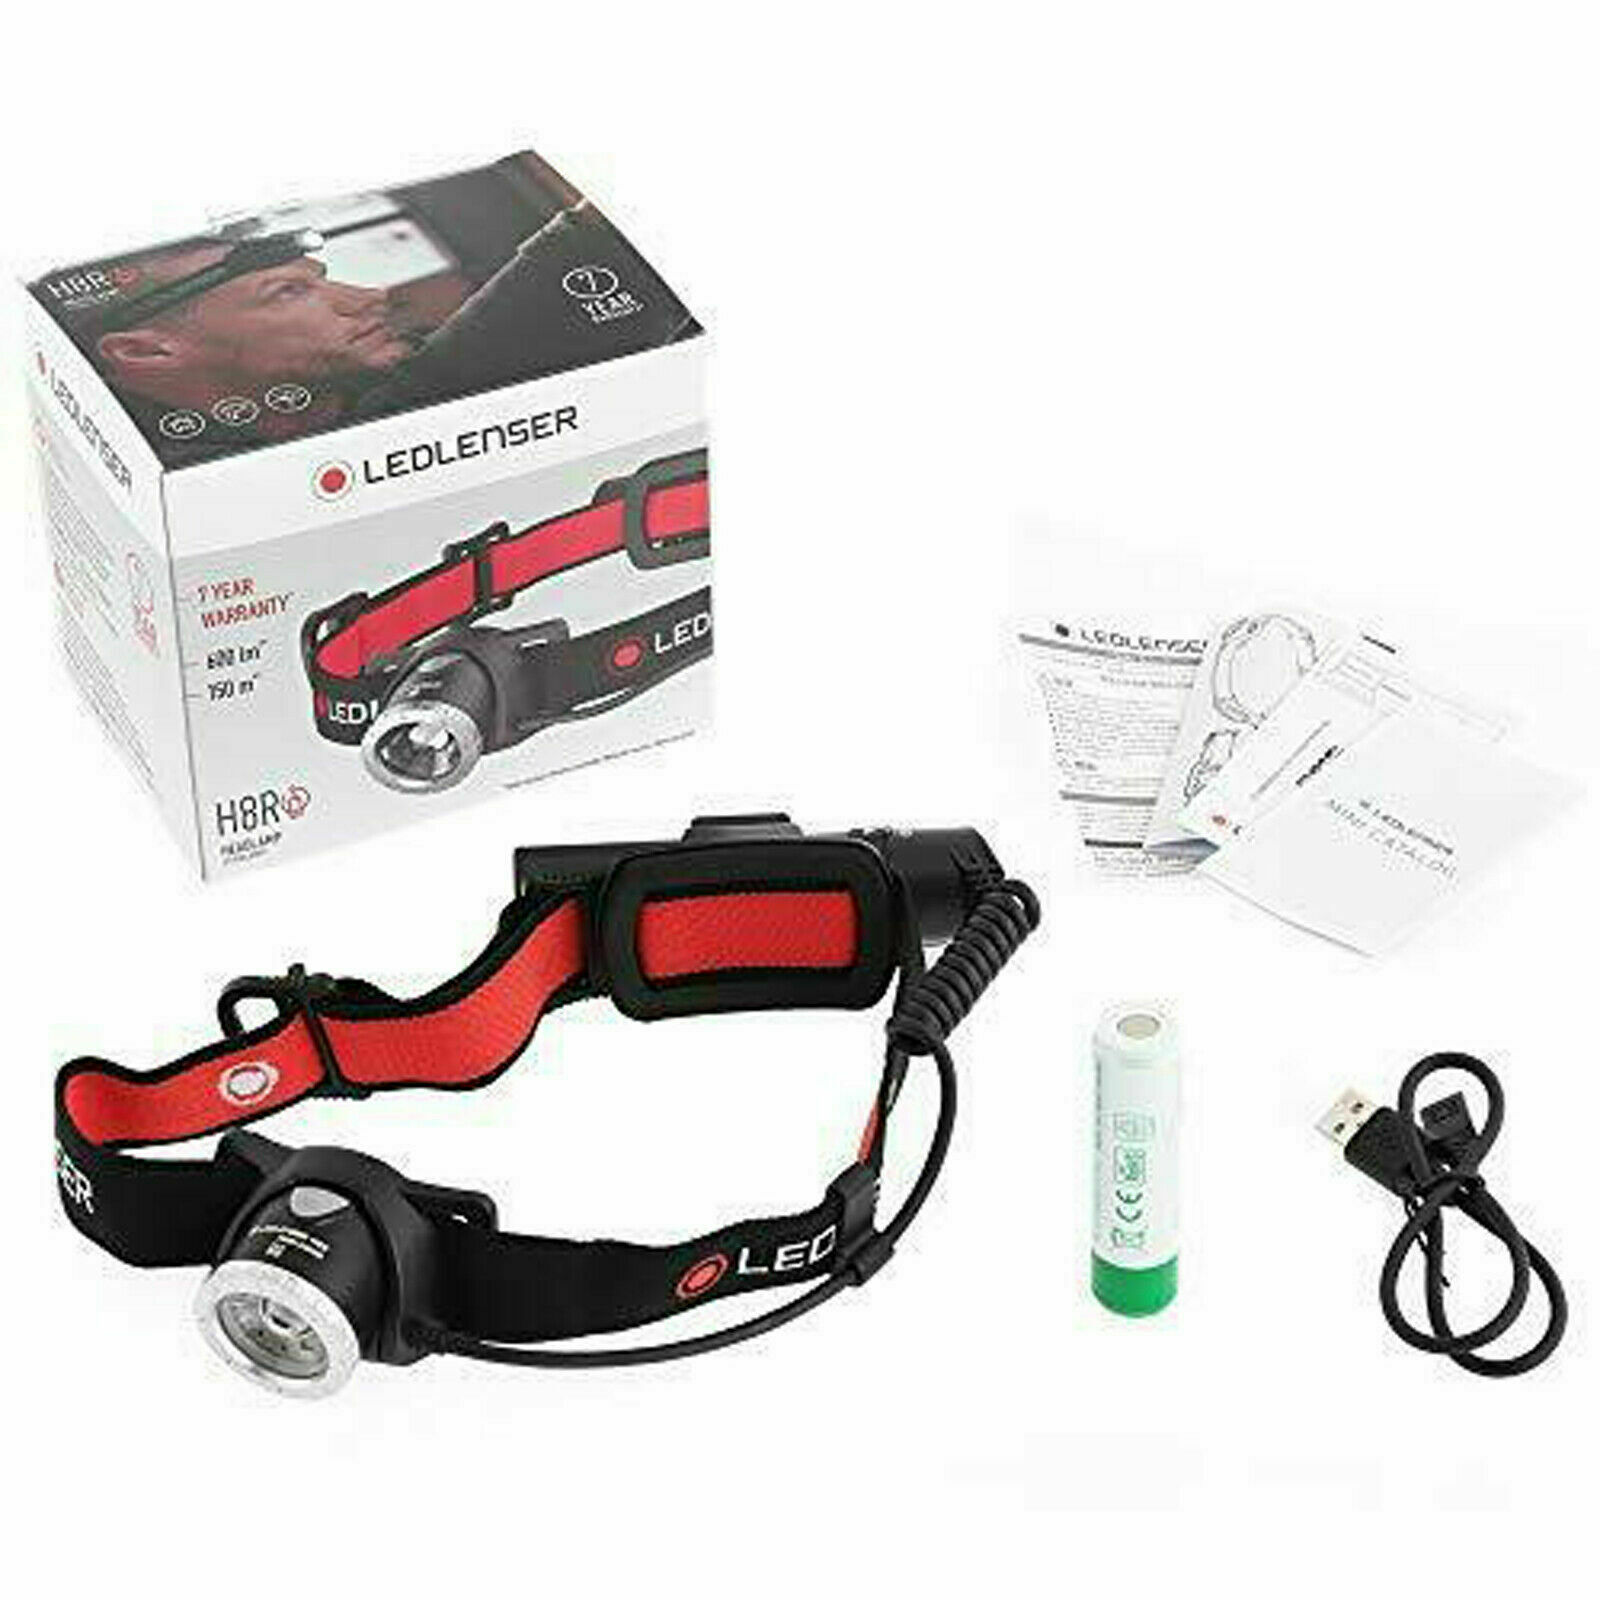 LED Lenser H8R Rechargeable Headlamp Head Torch P5 Torch TWIN Pack